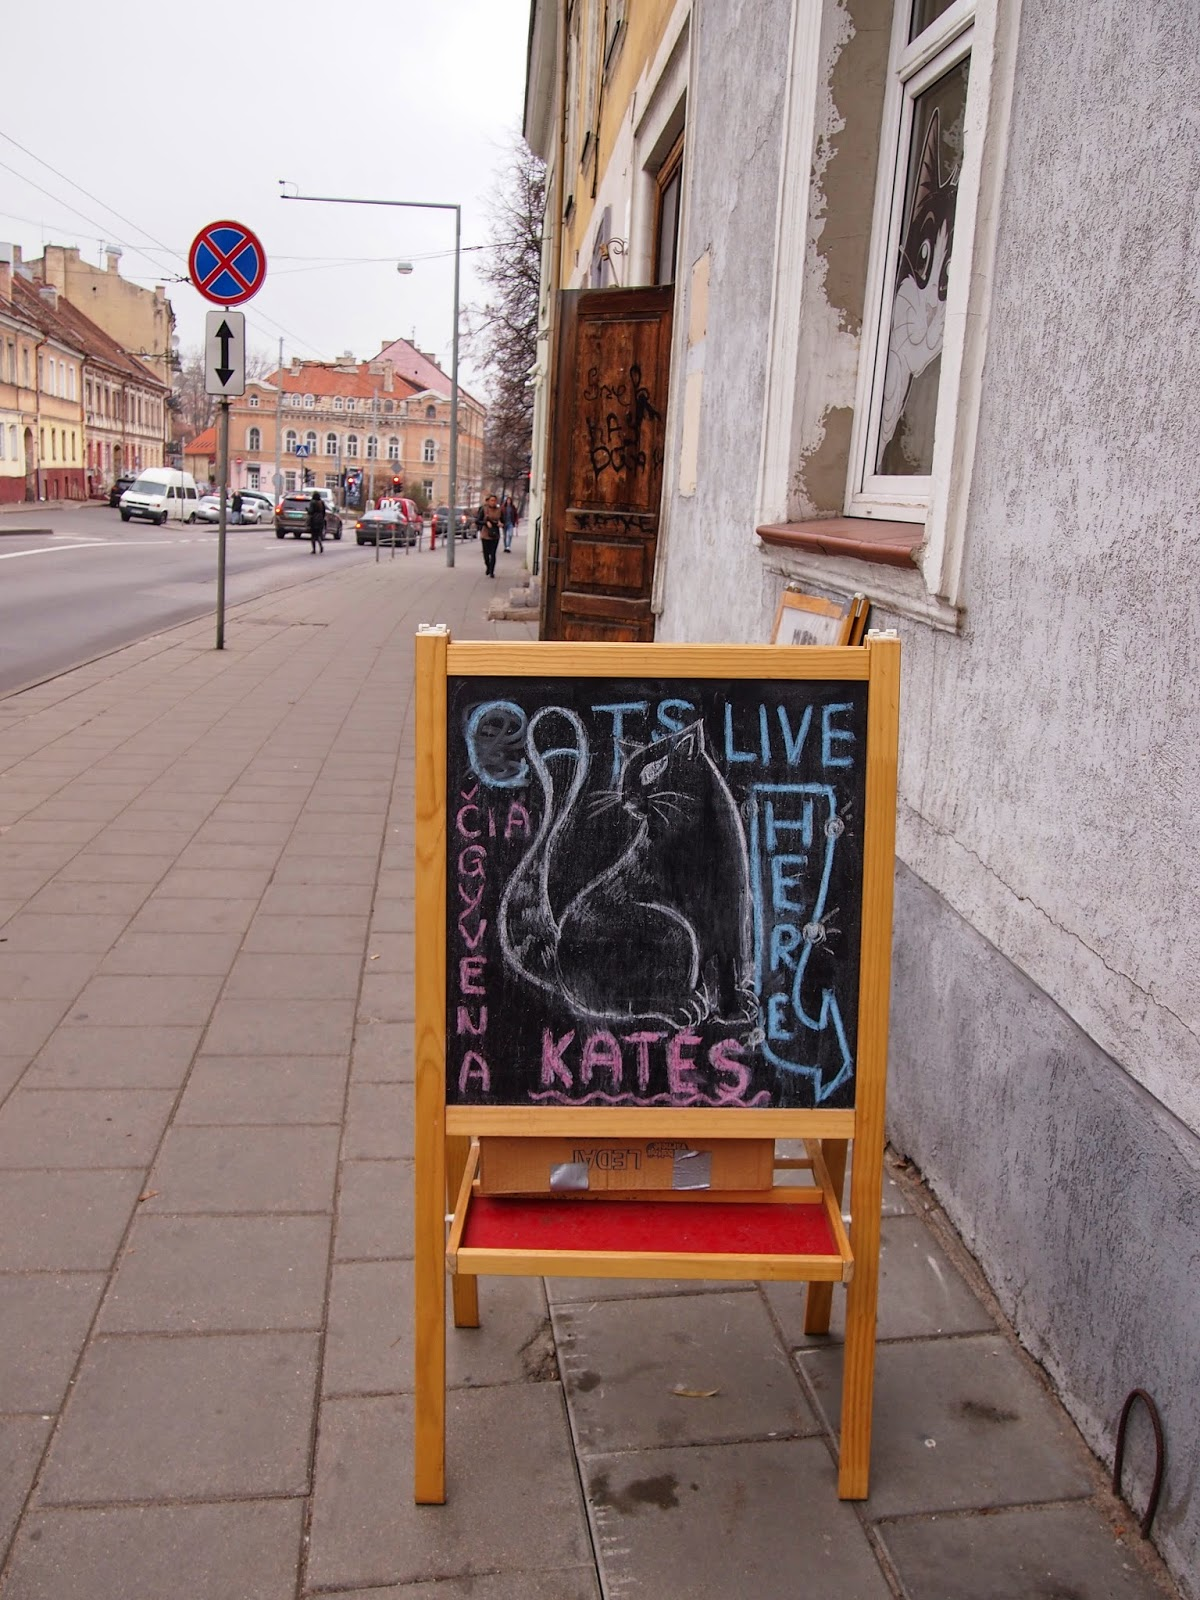 the sign outside the cat cafe in Vilnius